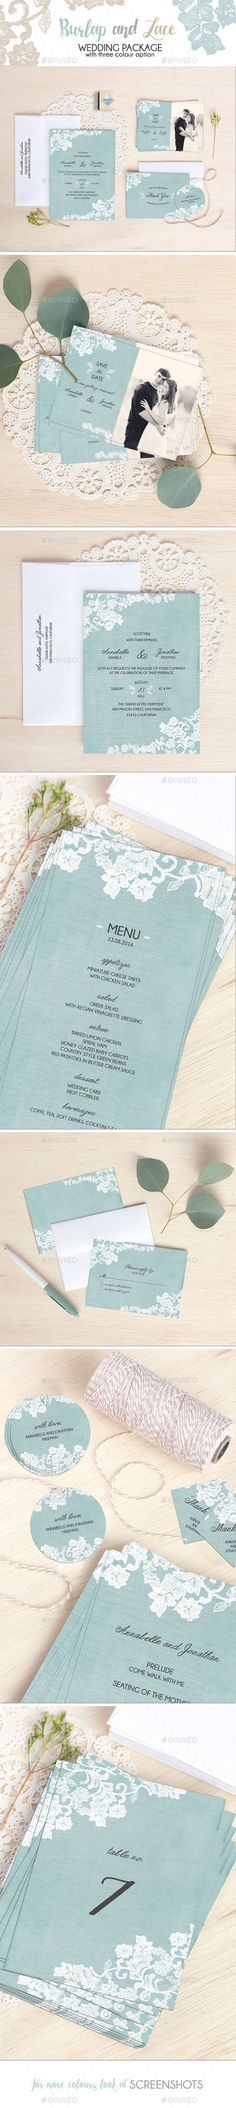 Wedding Invitation Stationery Stationery TemplatesPrint 145